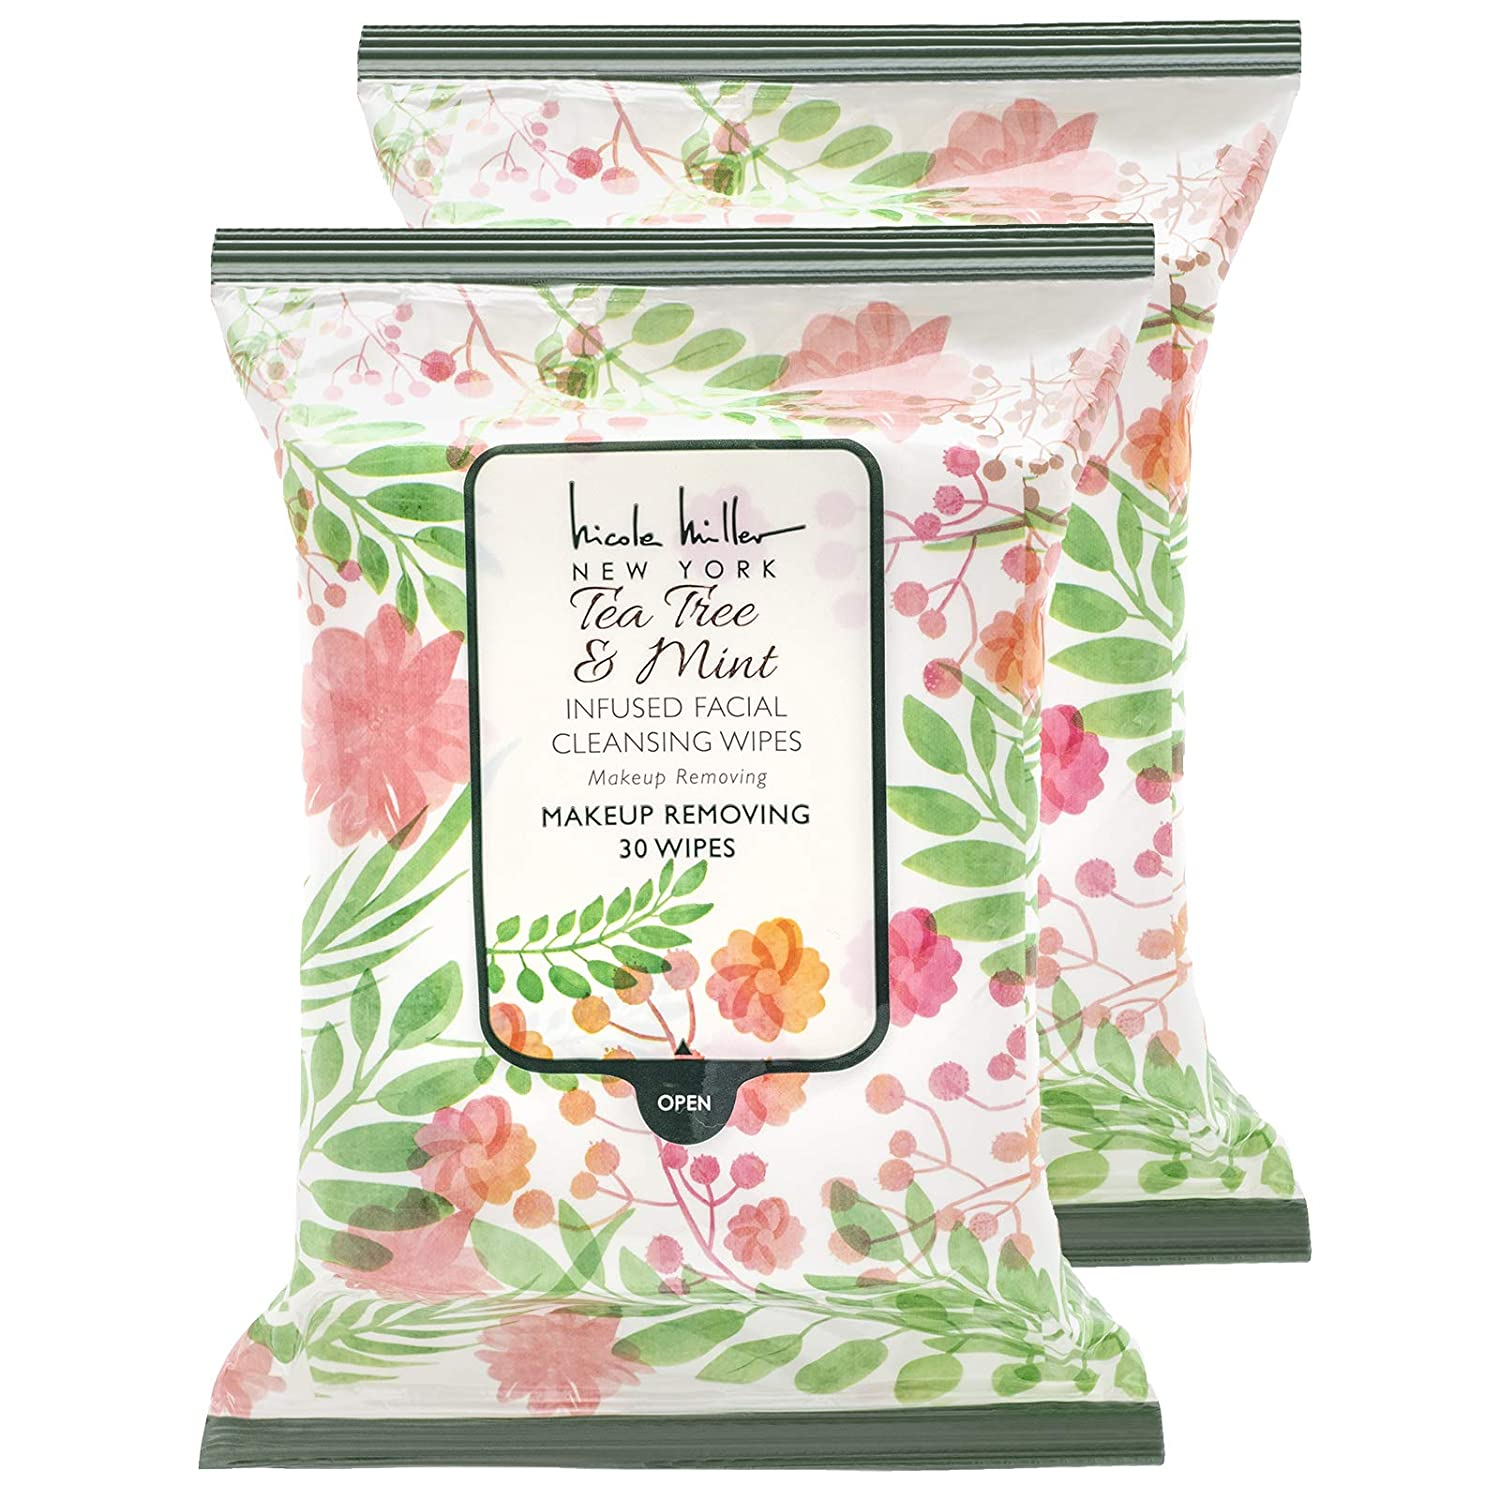 Nicole Miller 2 Pack (30 Count Each) Tea Tree and Mint Facial Cleansing and Make Up Remover Wipes